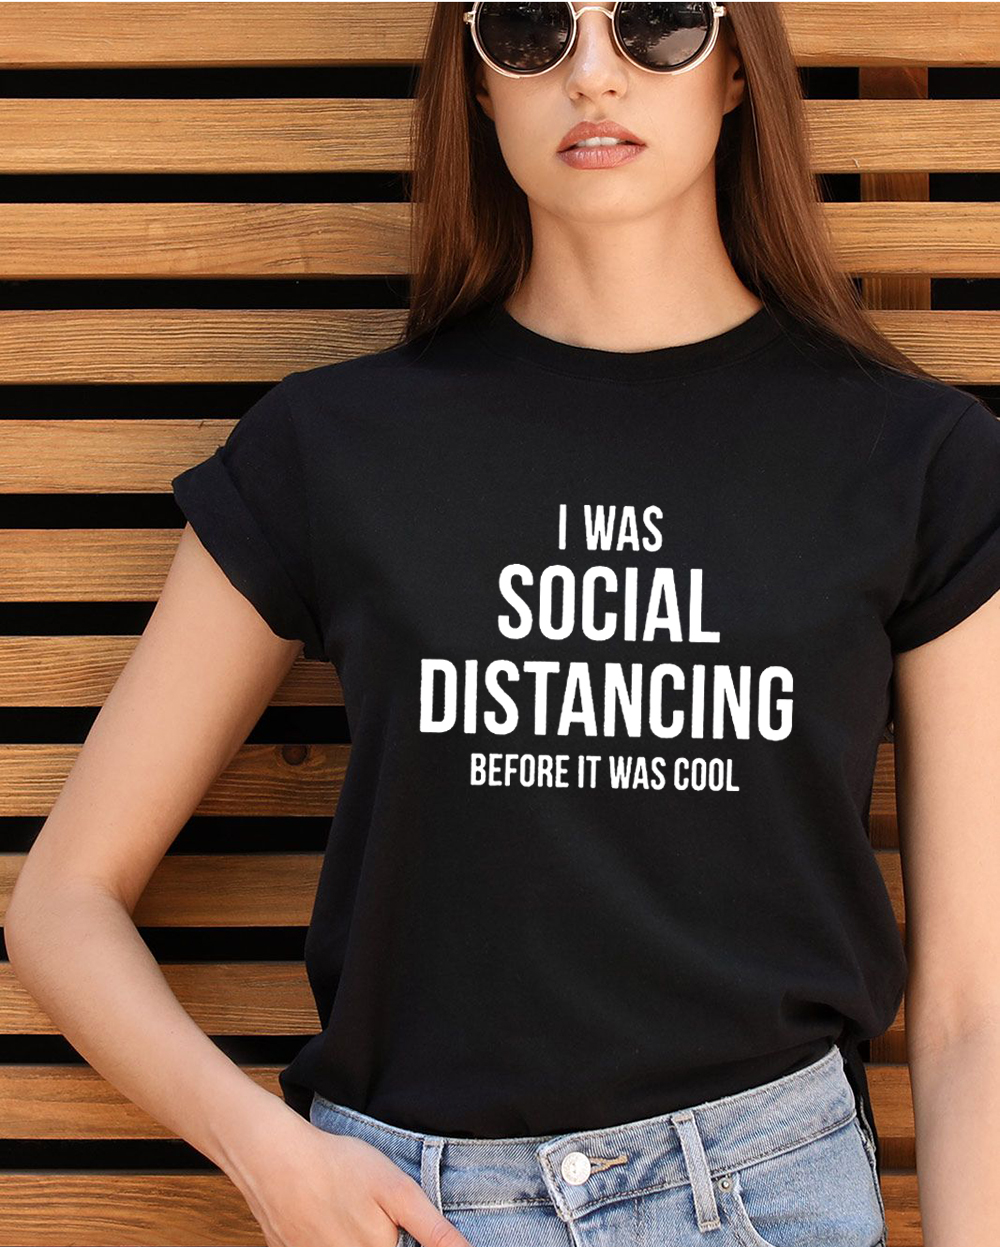 I Was Social Distancing Before It Was Cool Summer Women Short Sleeve T-shirt Female Harajuku Casual Grunge Tees Tops Camisetas